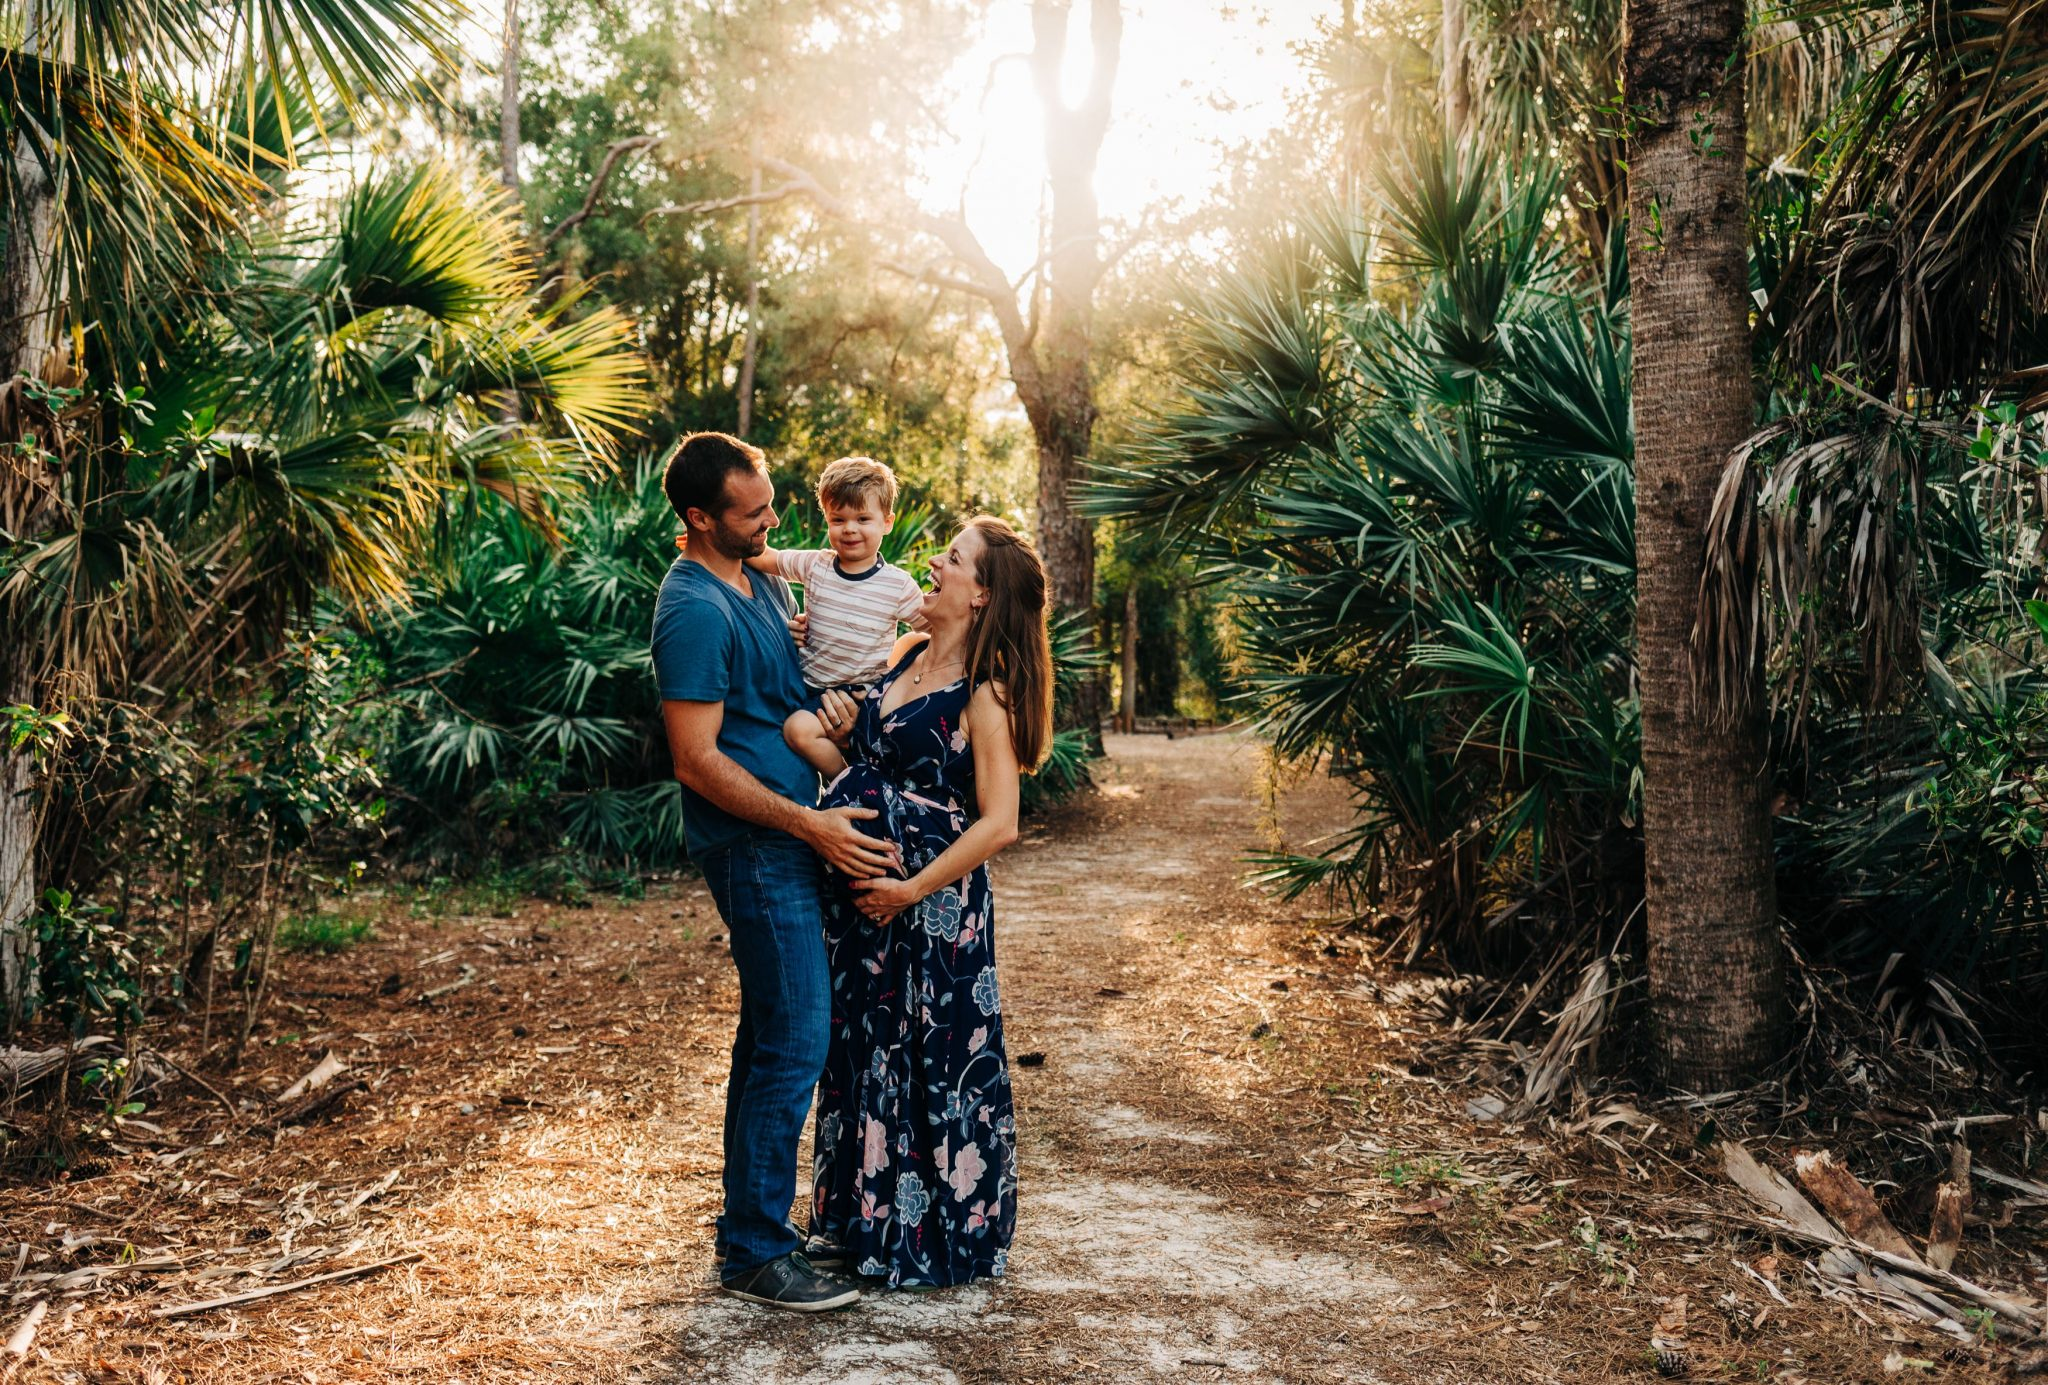 South Florida Maternity Session-Palm Beach Wellington-Family Photography-Erica Brooke Photography-1